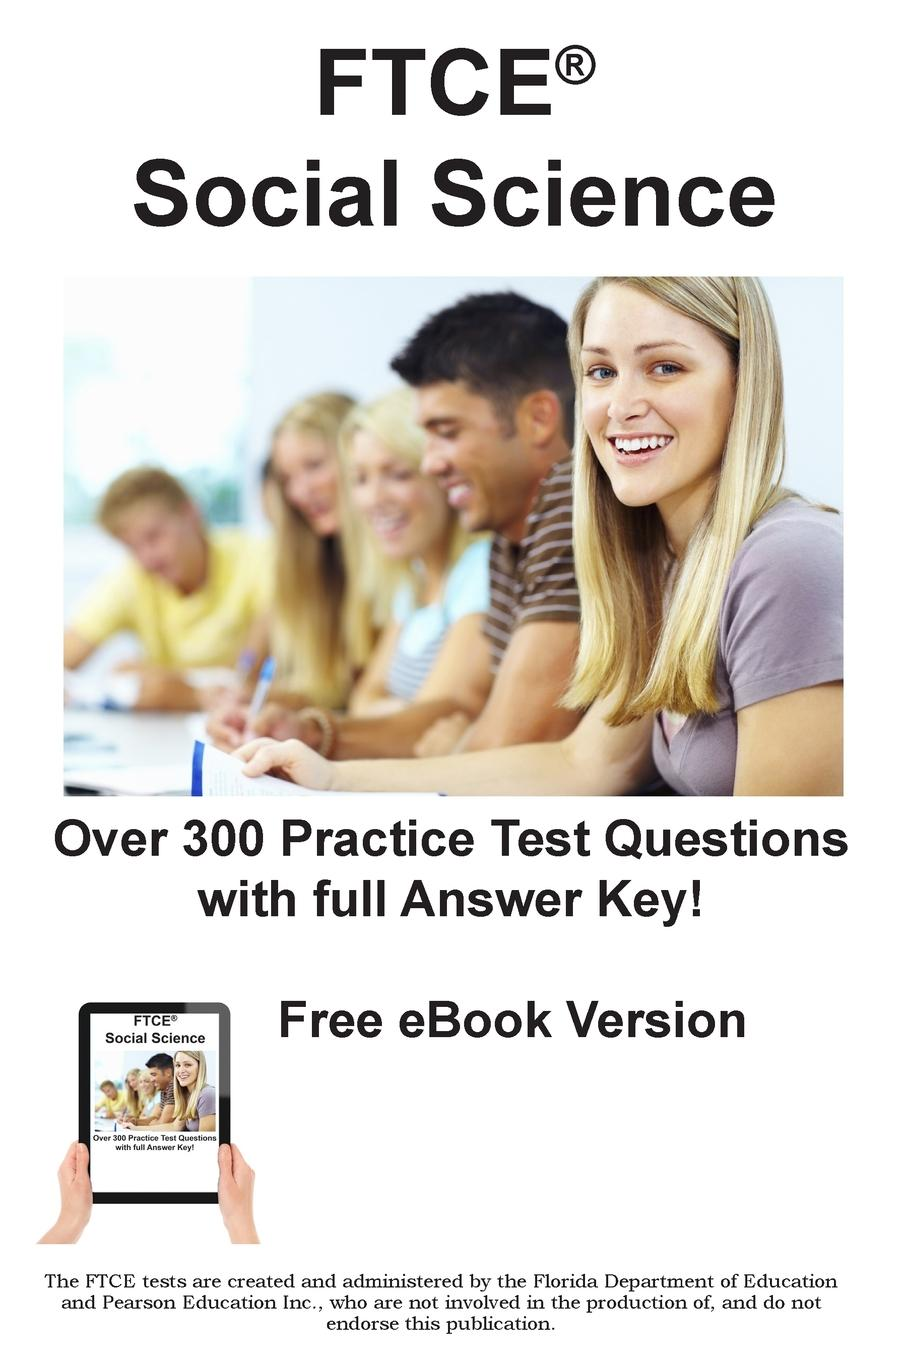 Complete Test Preparation Inc. FTCE Social Science 6-12. Practice Test Questions for FTCE Social Science Test quentin docter comptia a practice tests exam 220 901 and exam 220 902